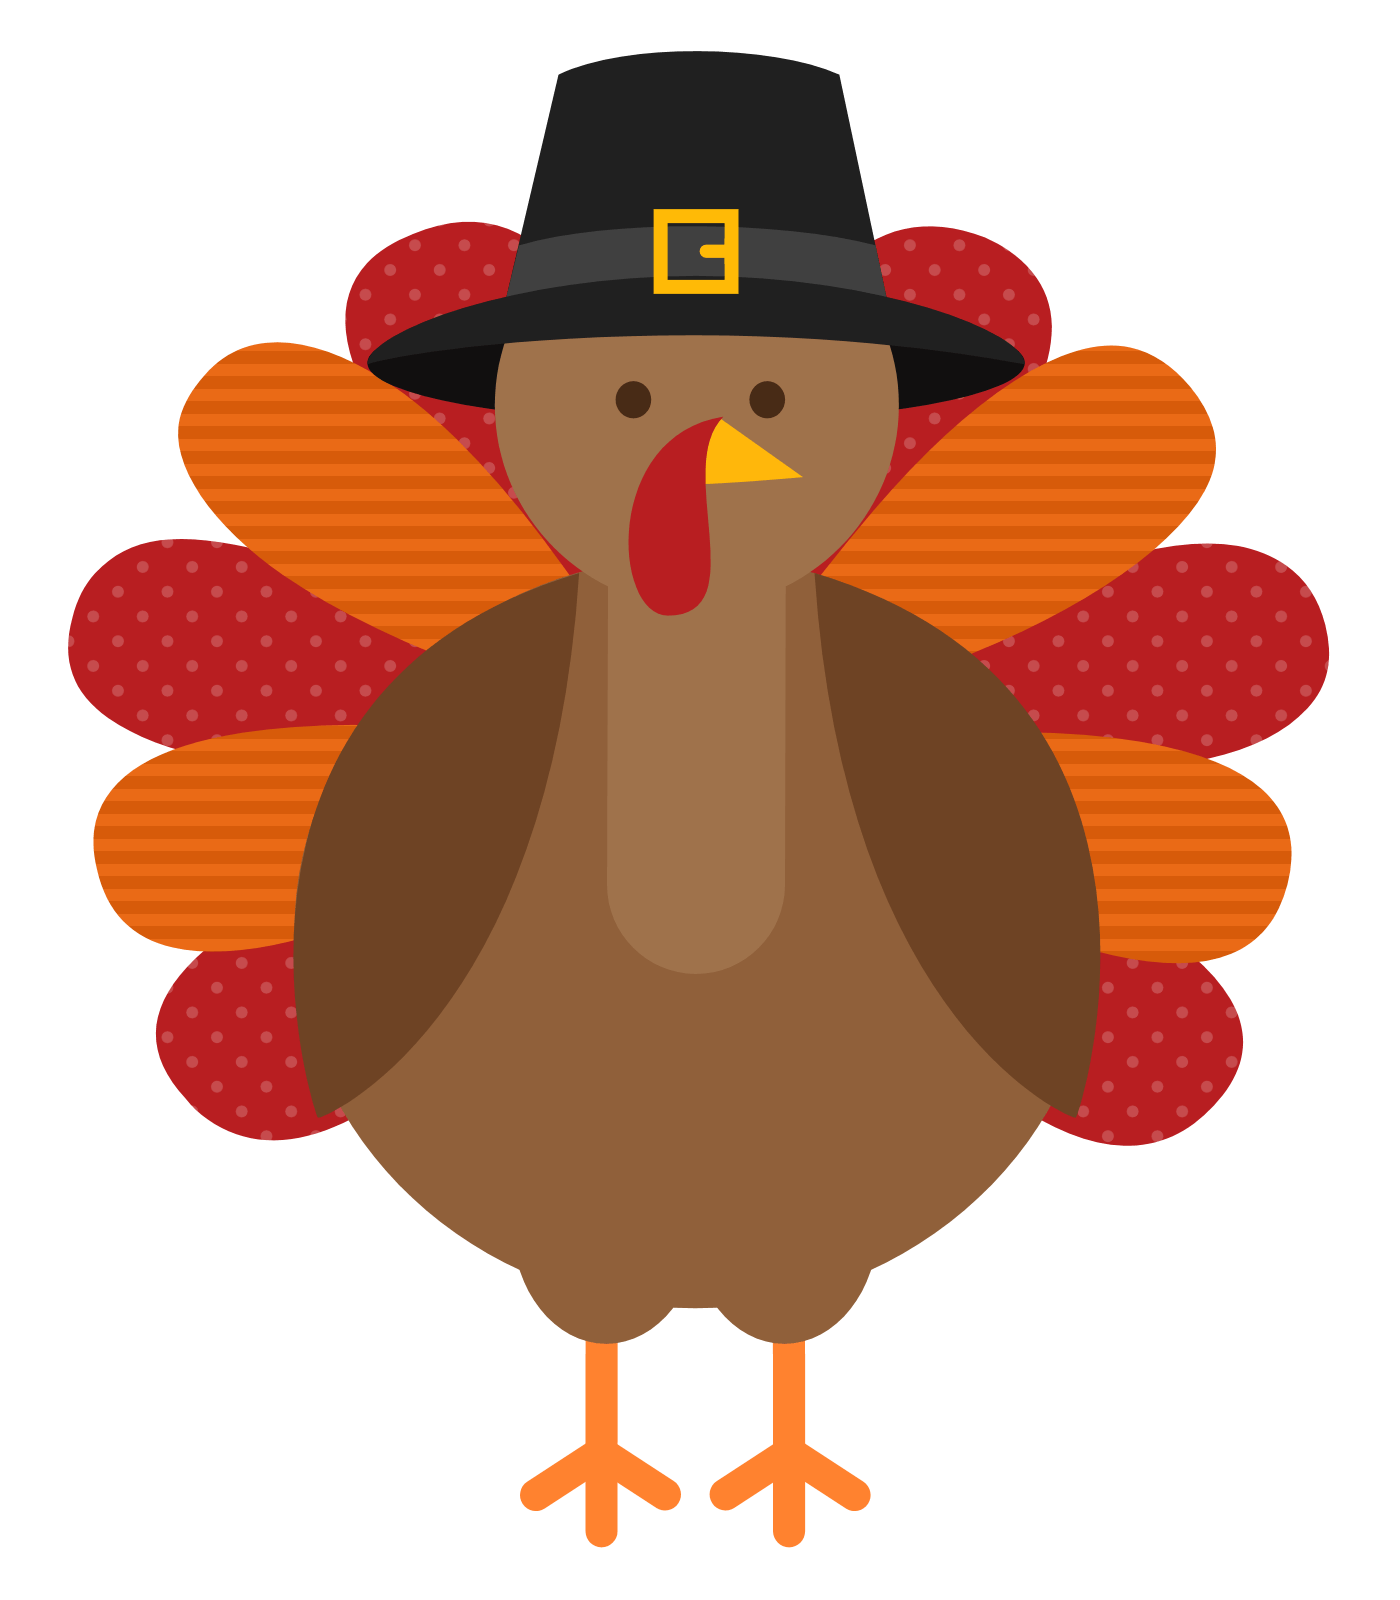 Turkey and gravy clipart graphic freeuse stock Funny Turkey Clipart (61+) graphic freeuse stock